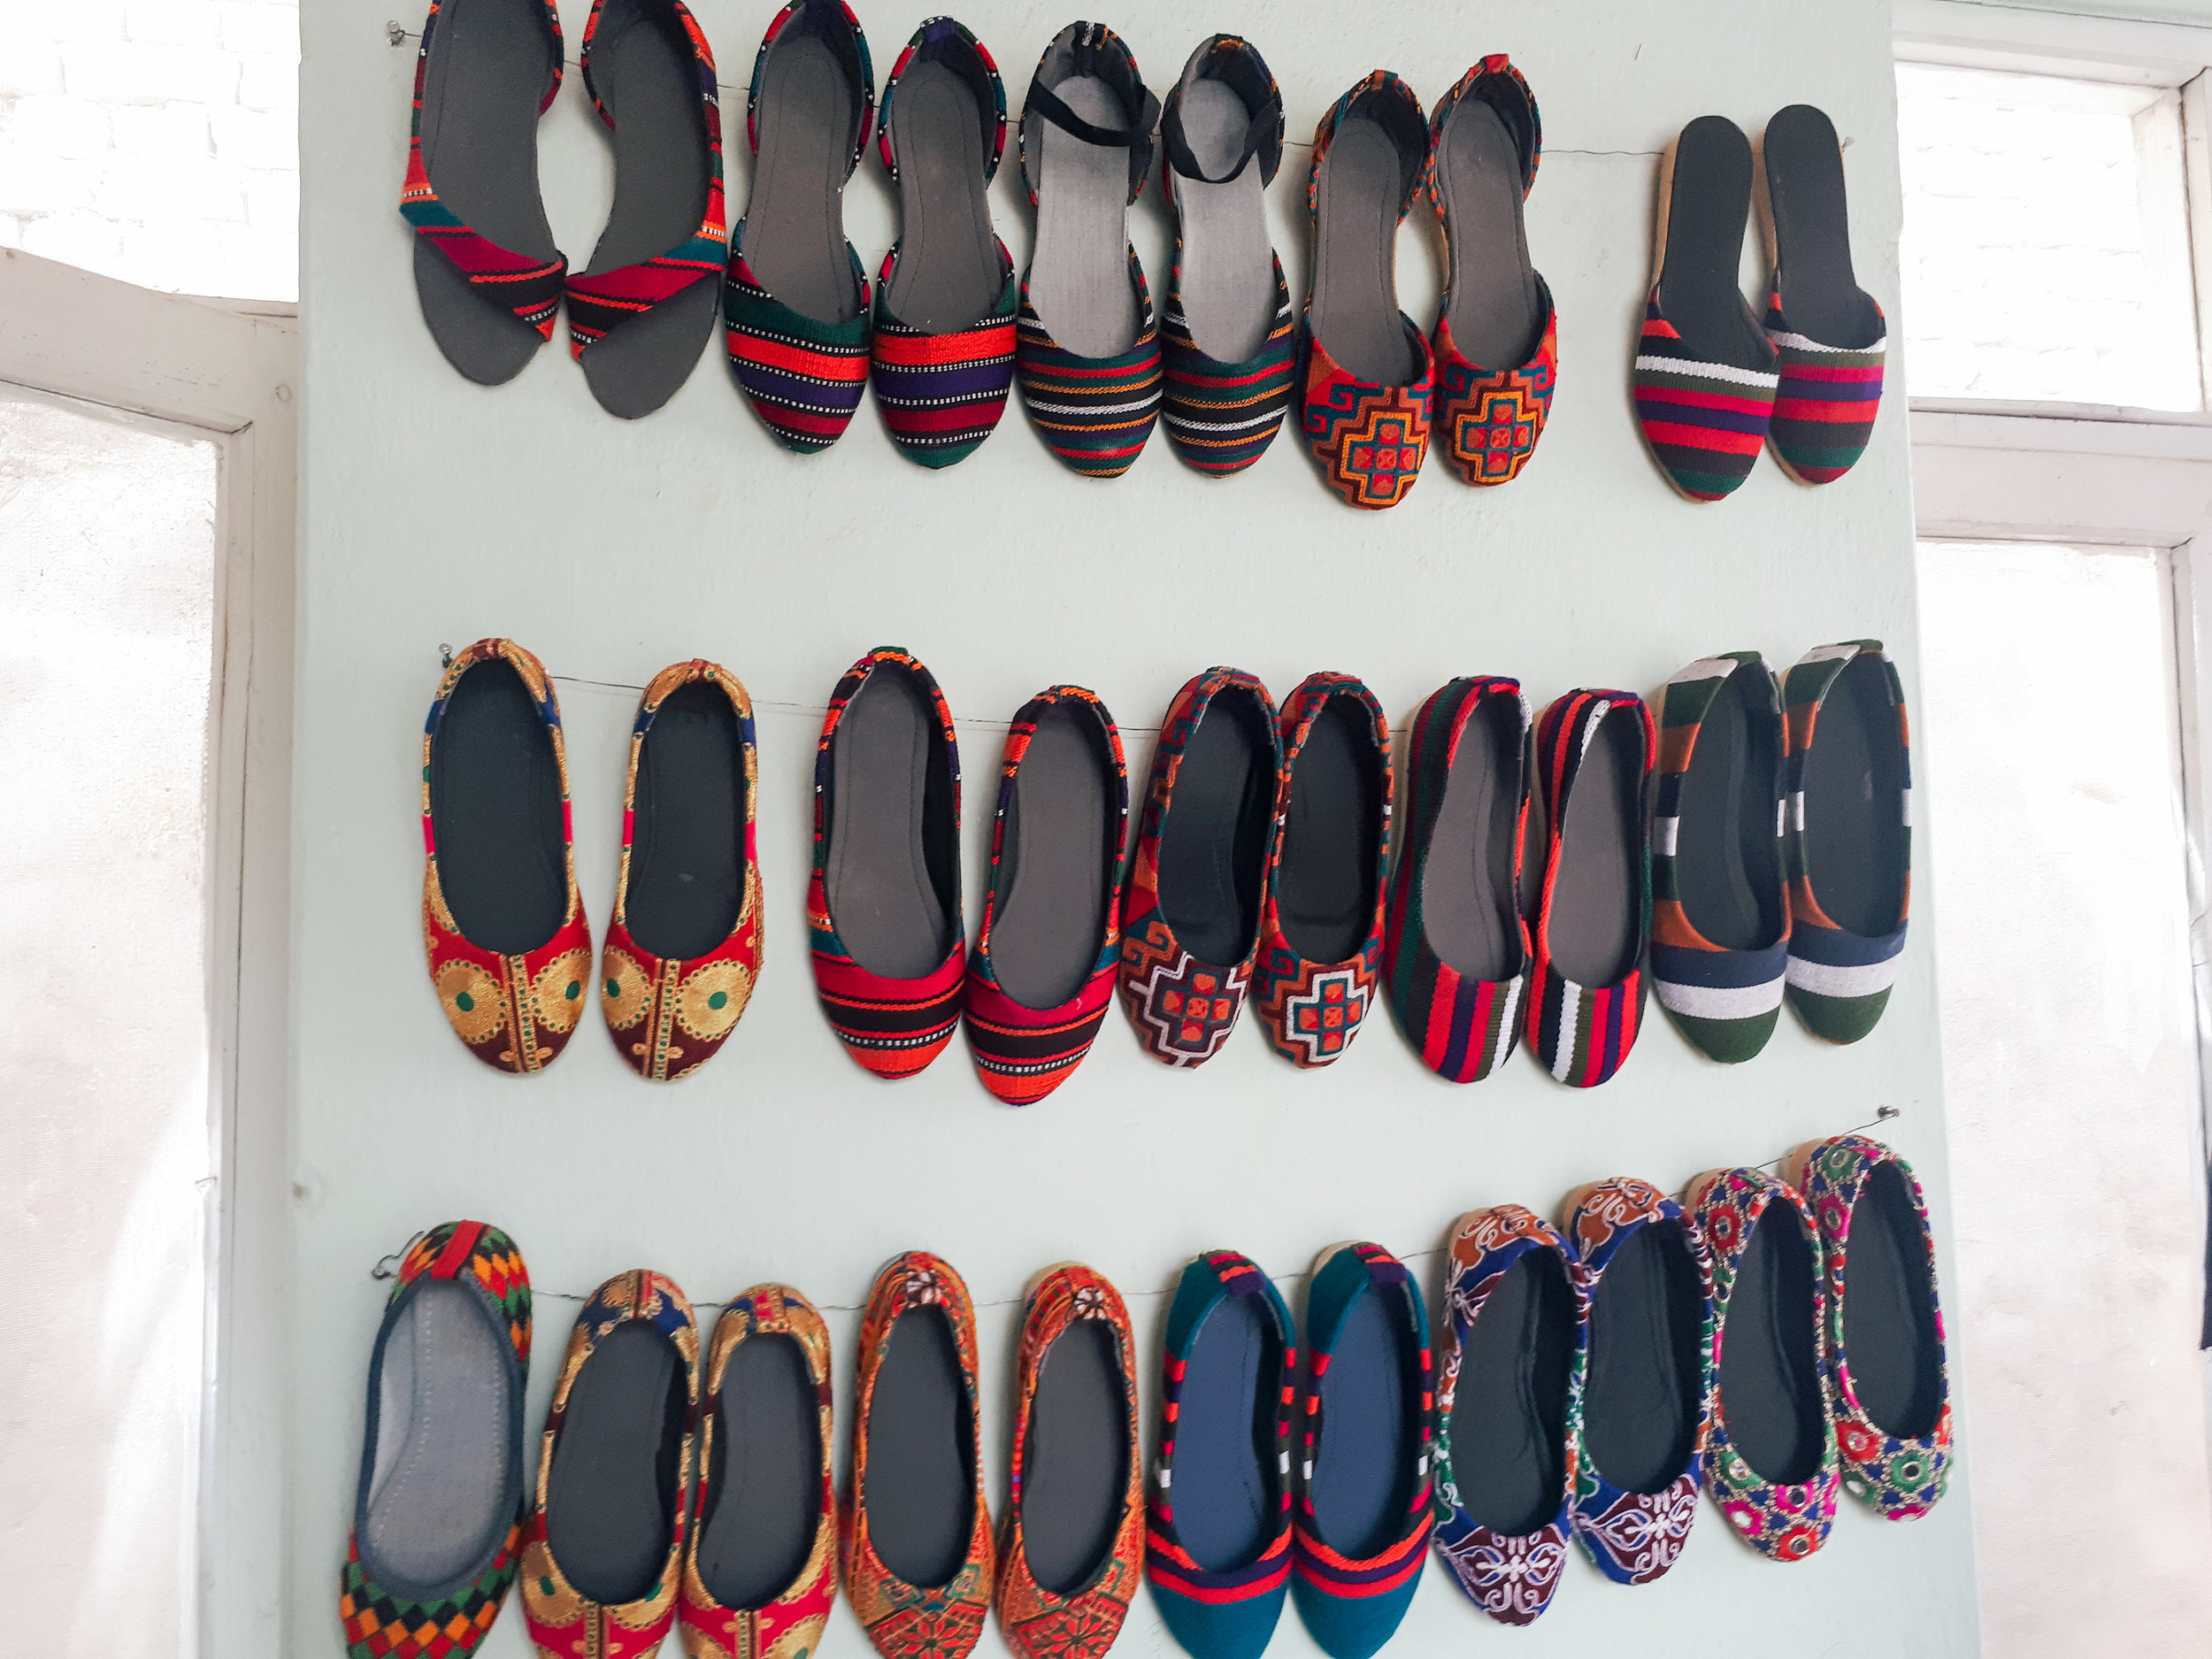 The results of our shoe making vocational training class